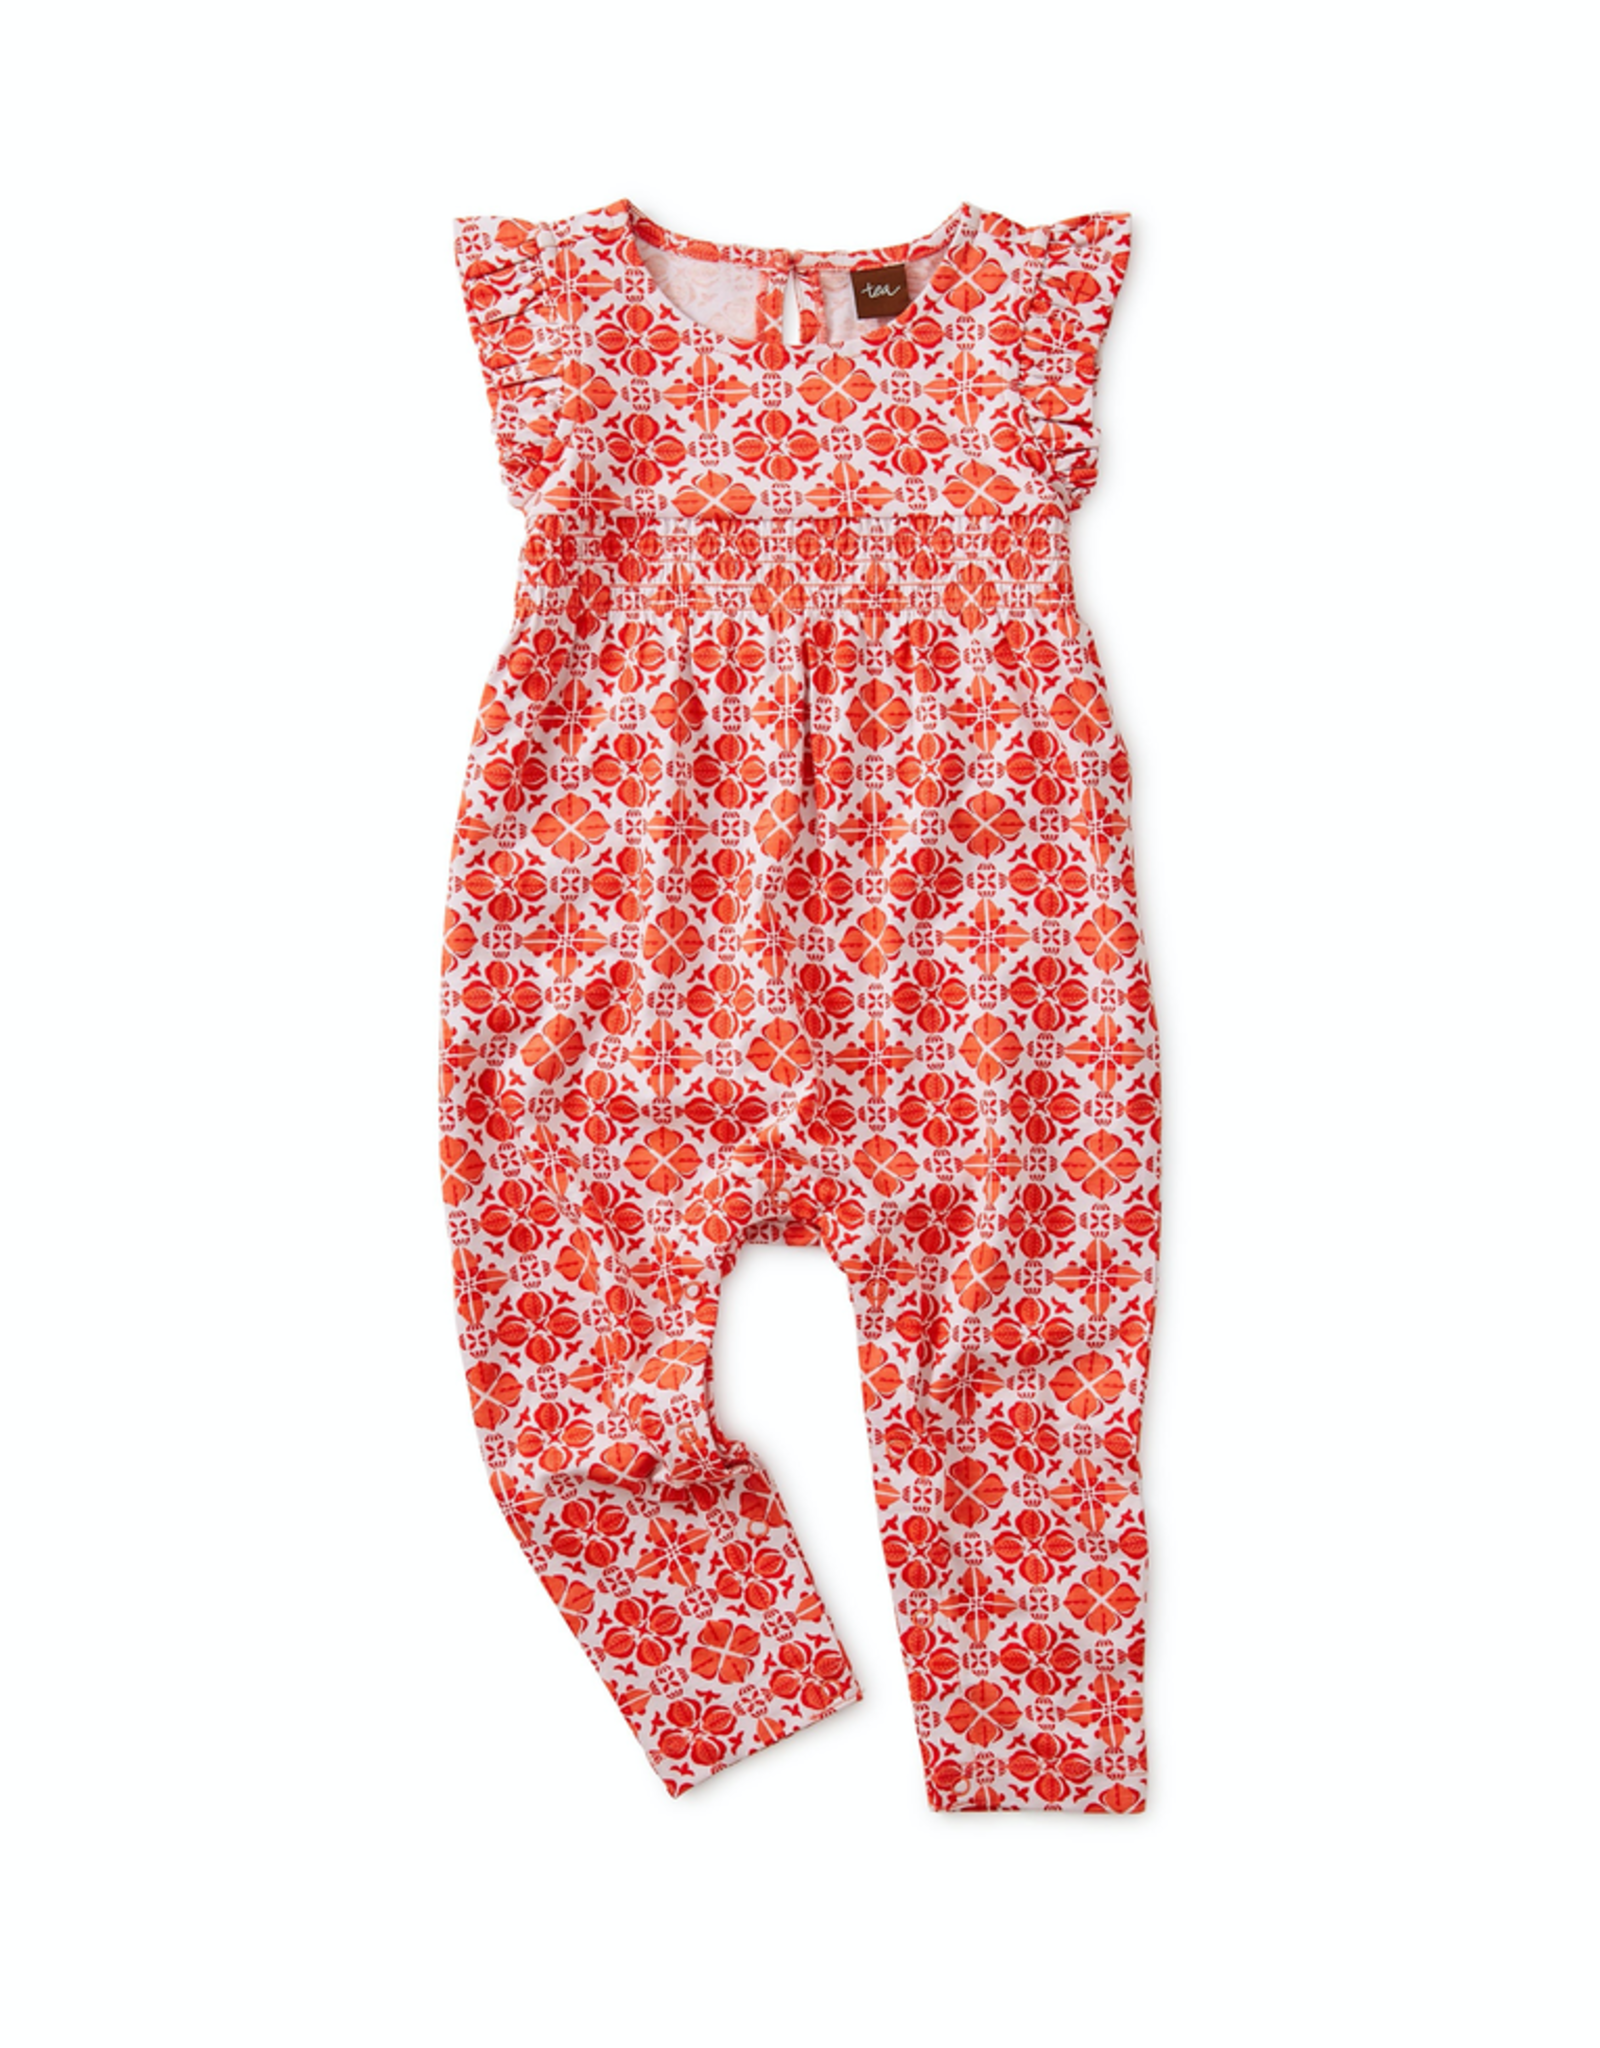 Tea Collection Fish Tile Ruffled Romper for Baby Girl